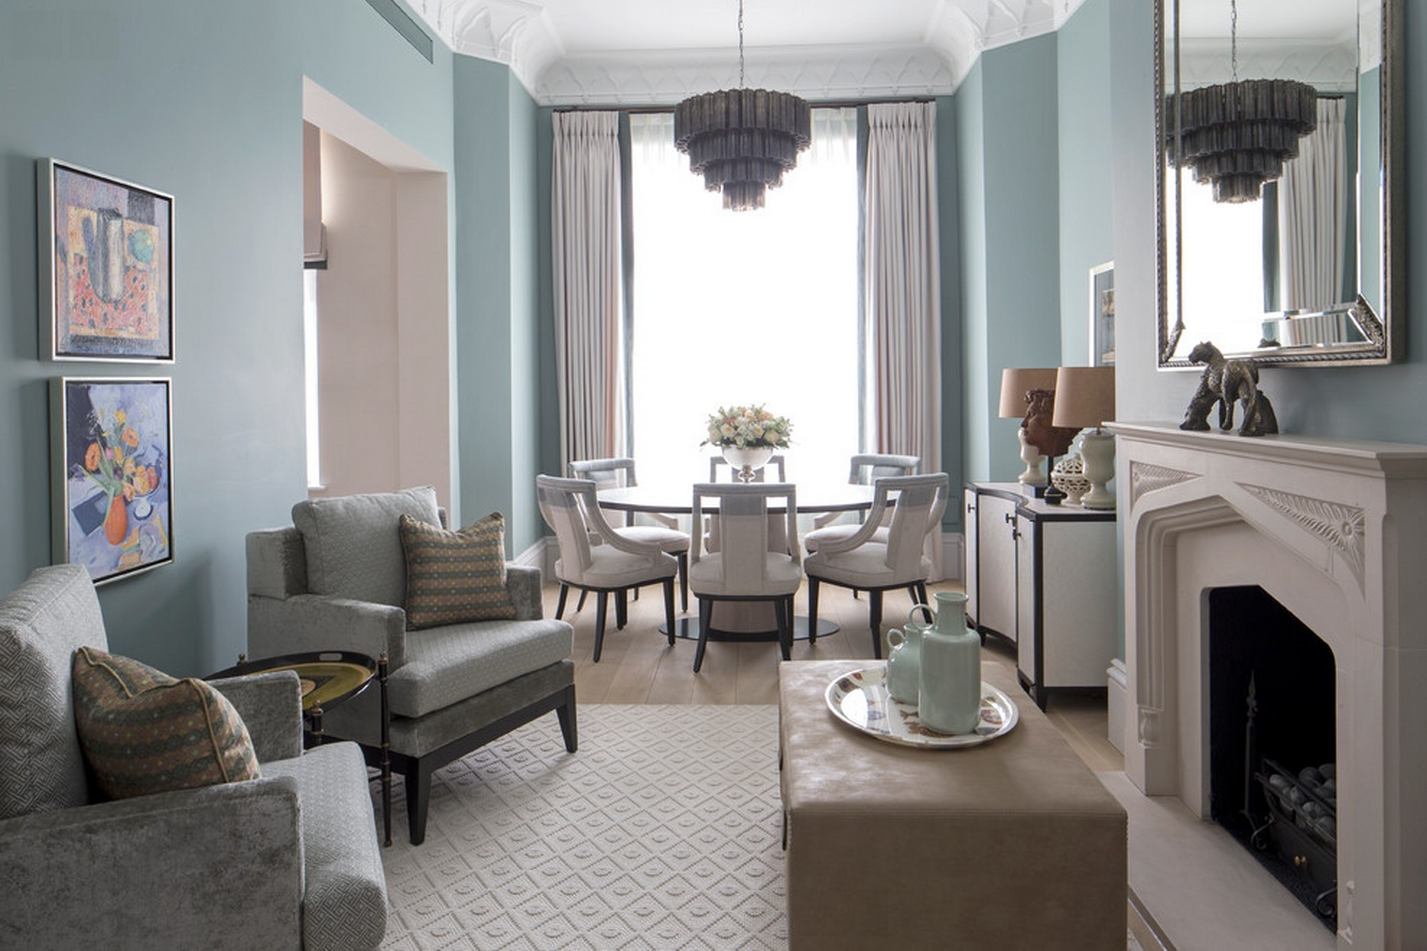 7 Ways To Use Duck Egg Blue To Spruce Up Your Living Room 20+ Duck Egg Living Room Decor Ideas